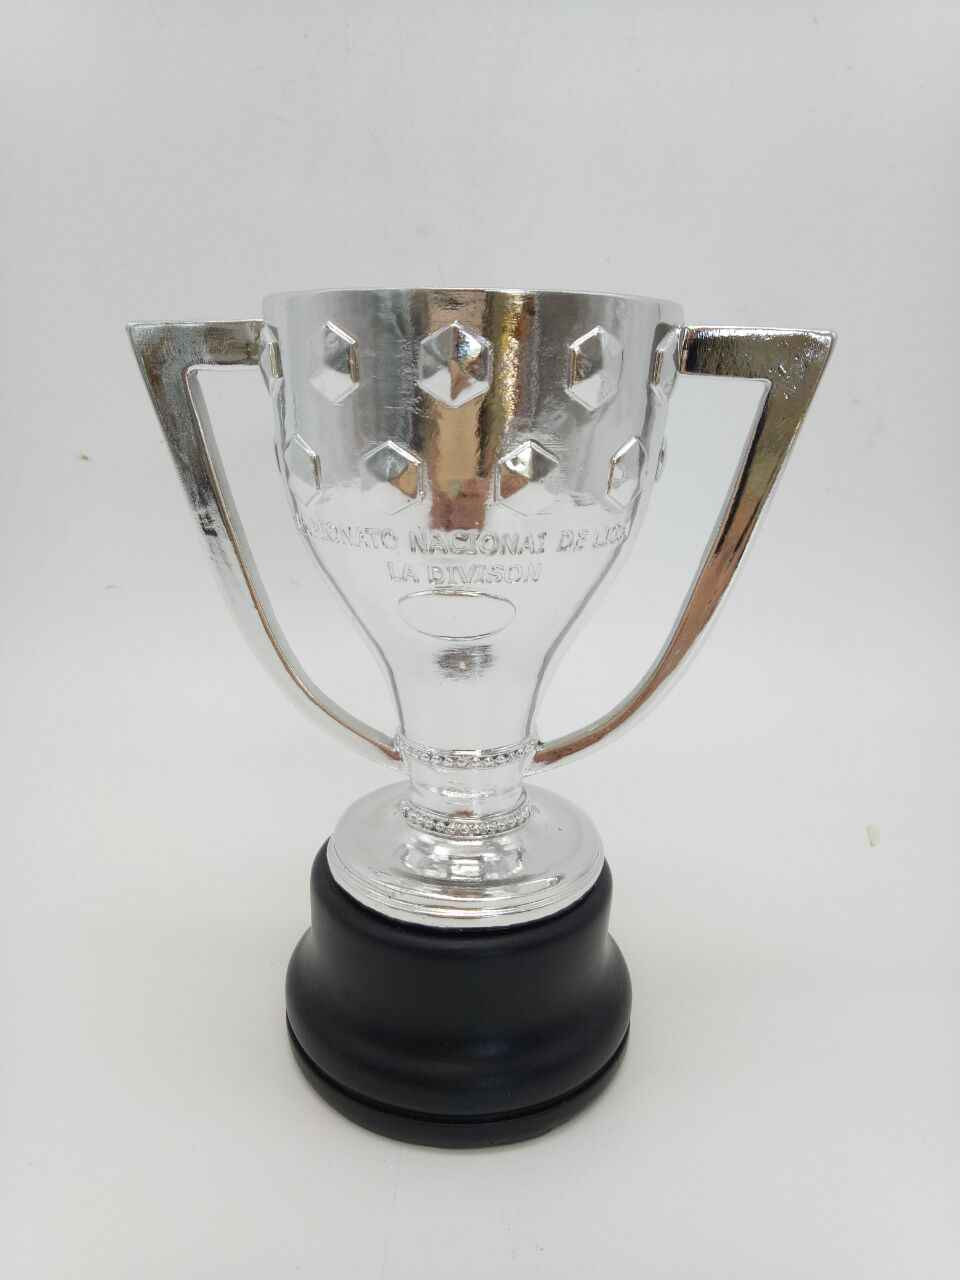 High Quality Spain La Liga Trophies And Awards Football Trophies Award Medals Aliexpress